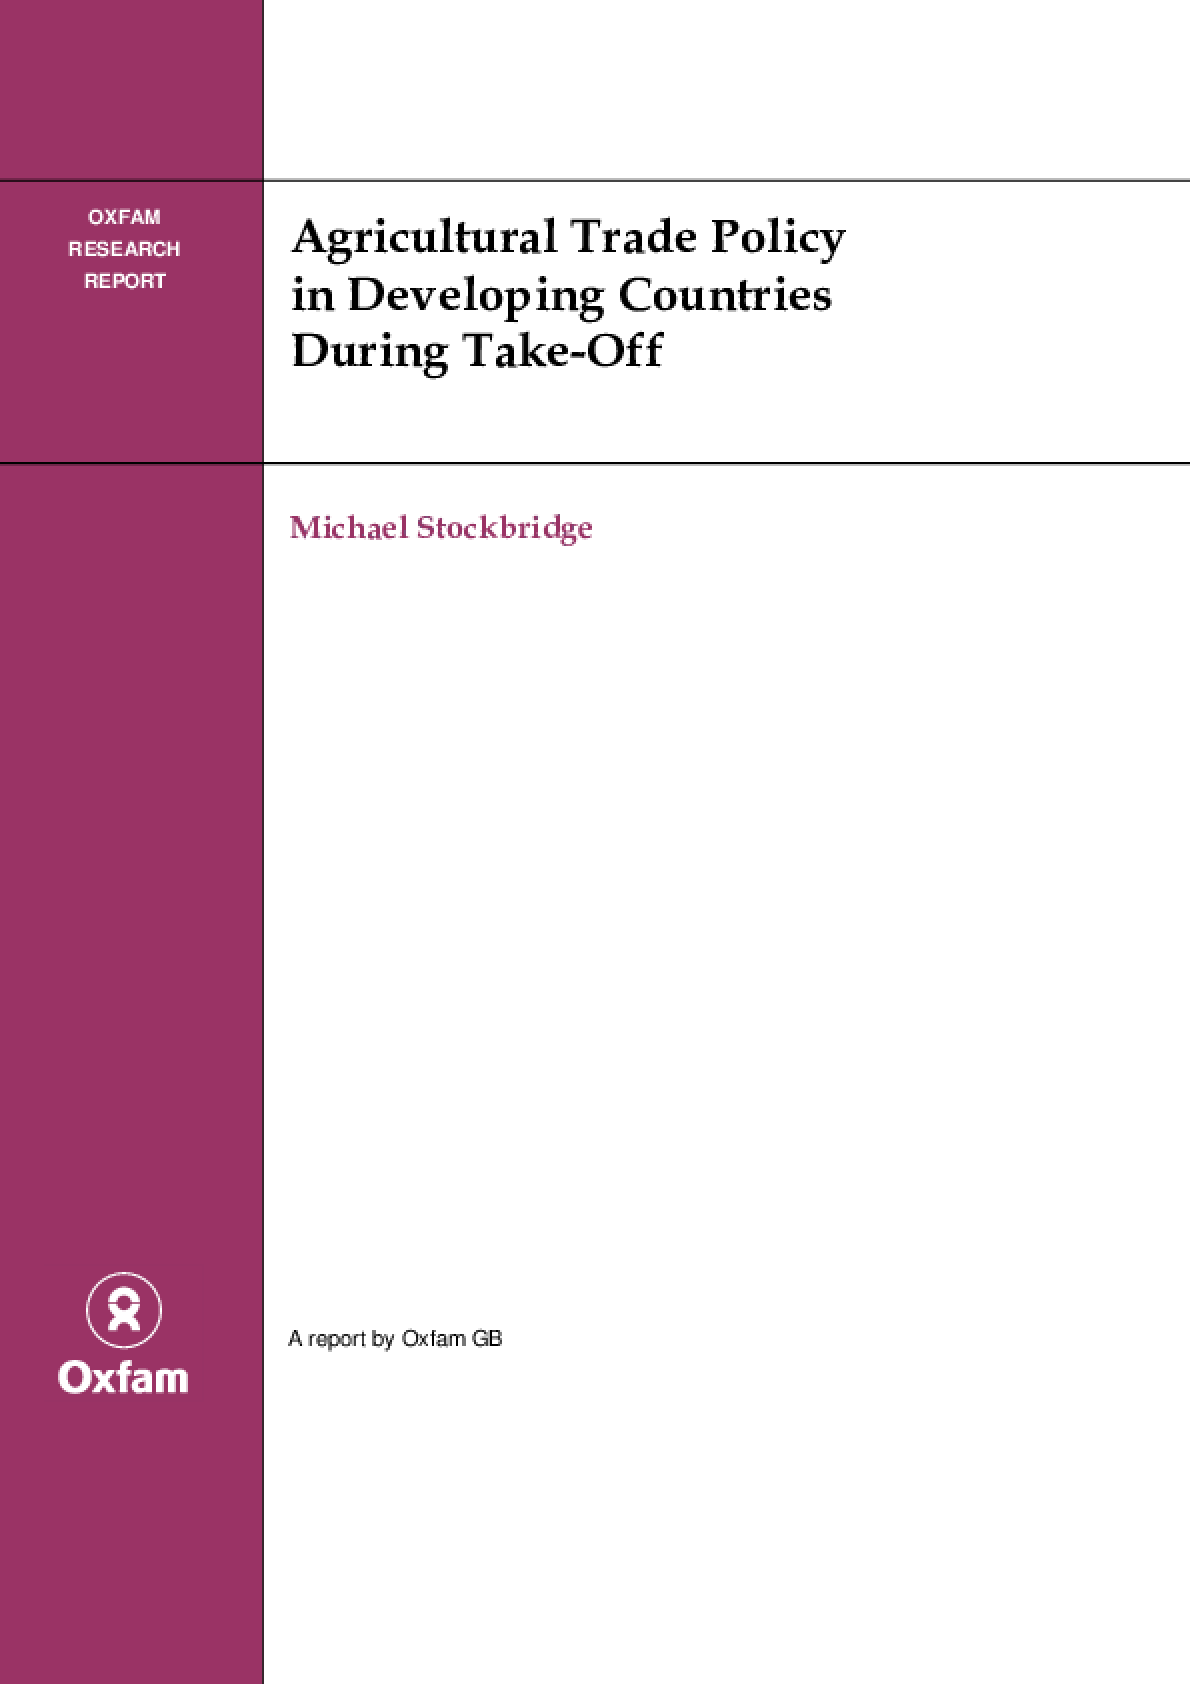 Agricultural Trade Policy in Developing Countries During Take-Off